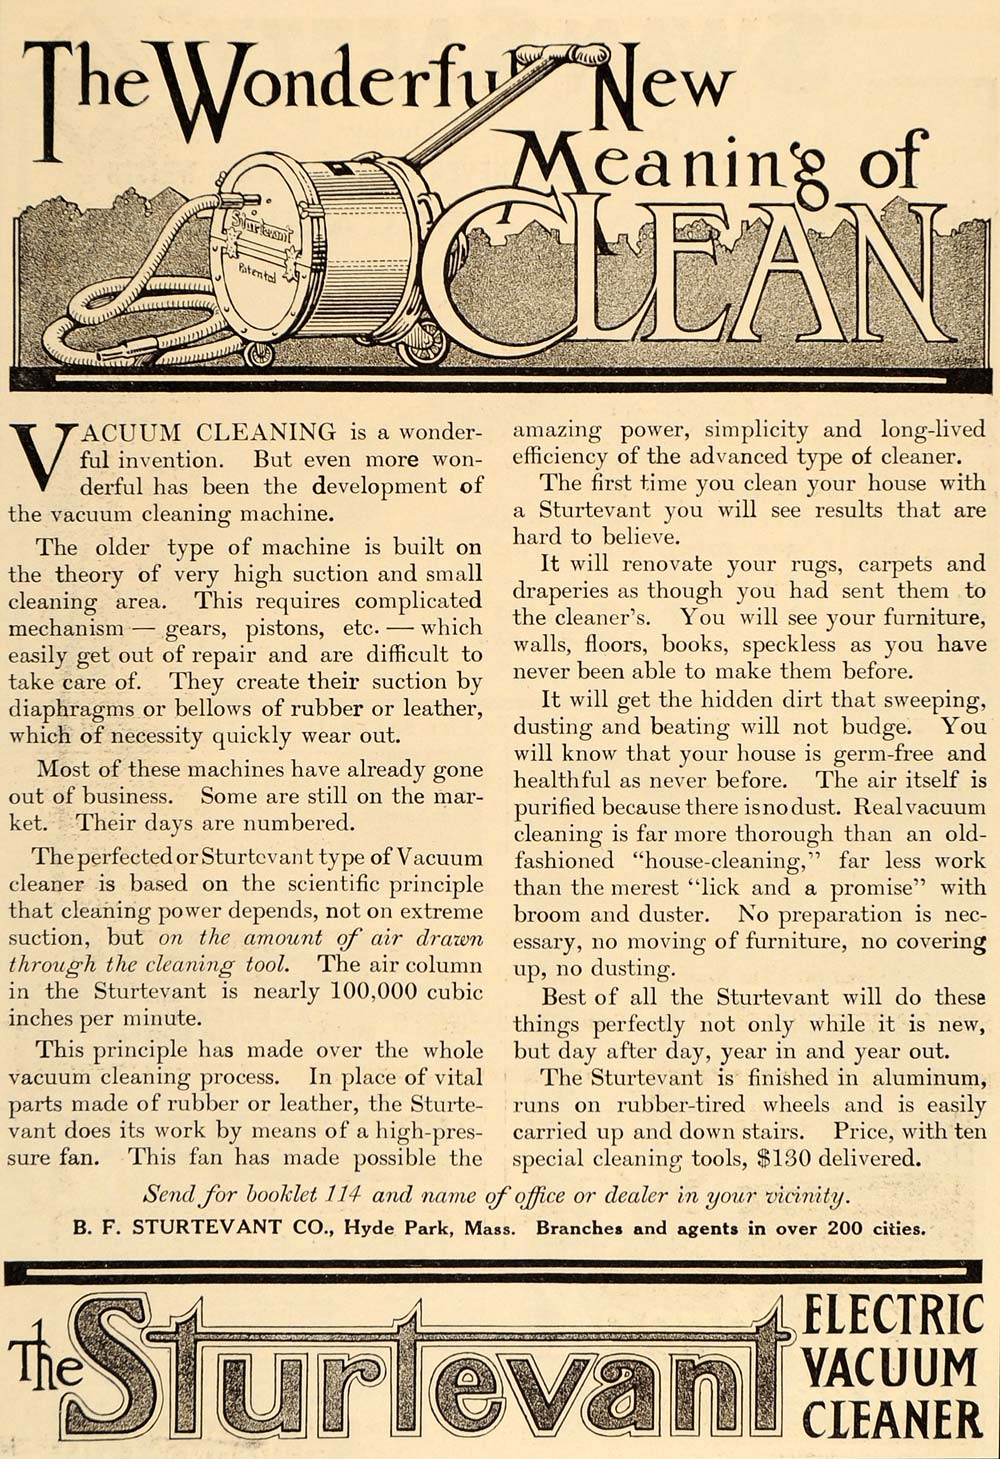 1911 Vintage Ad B.F. Sturtevant Electric Vacuum Cleaner - ORIGINAL OLD6